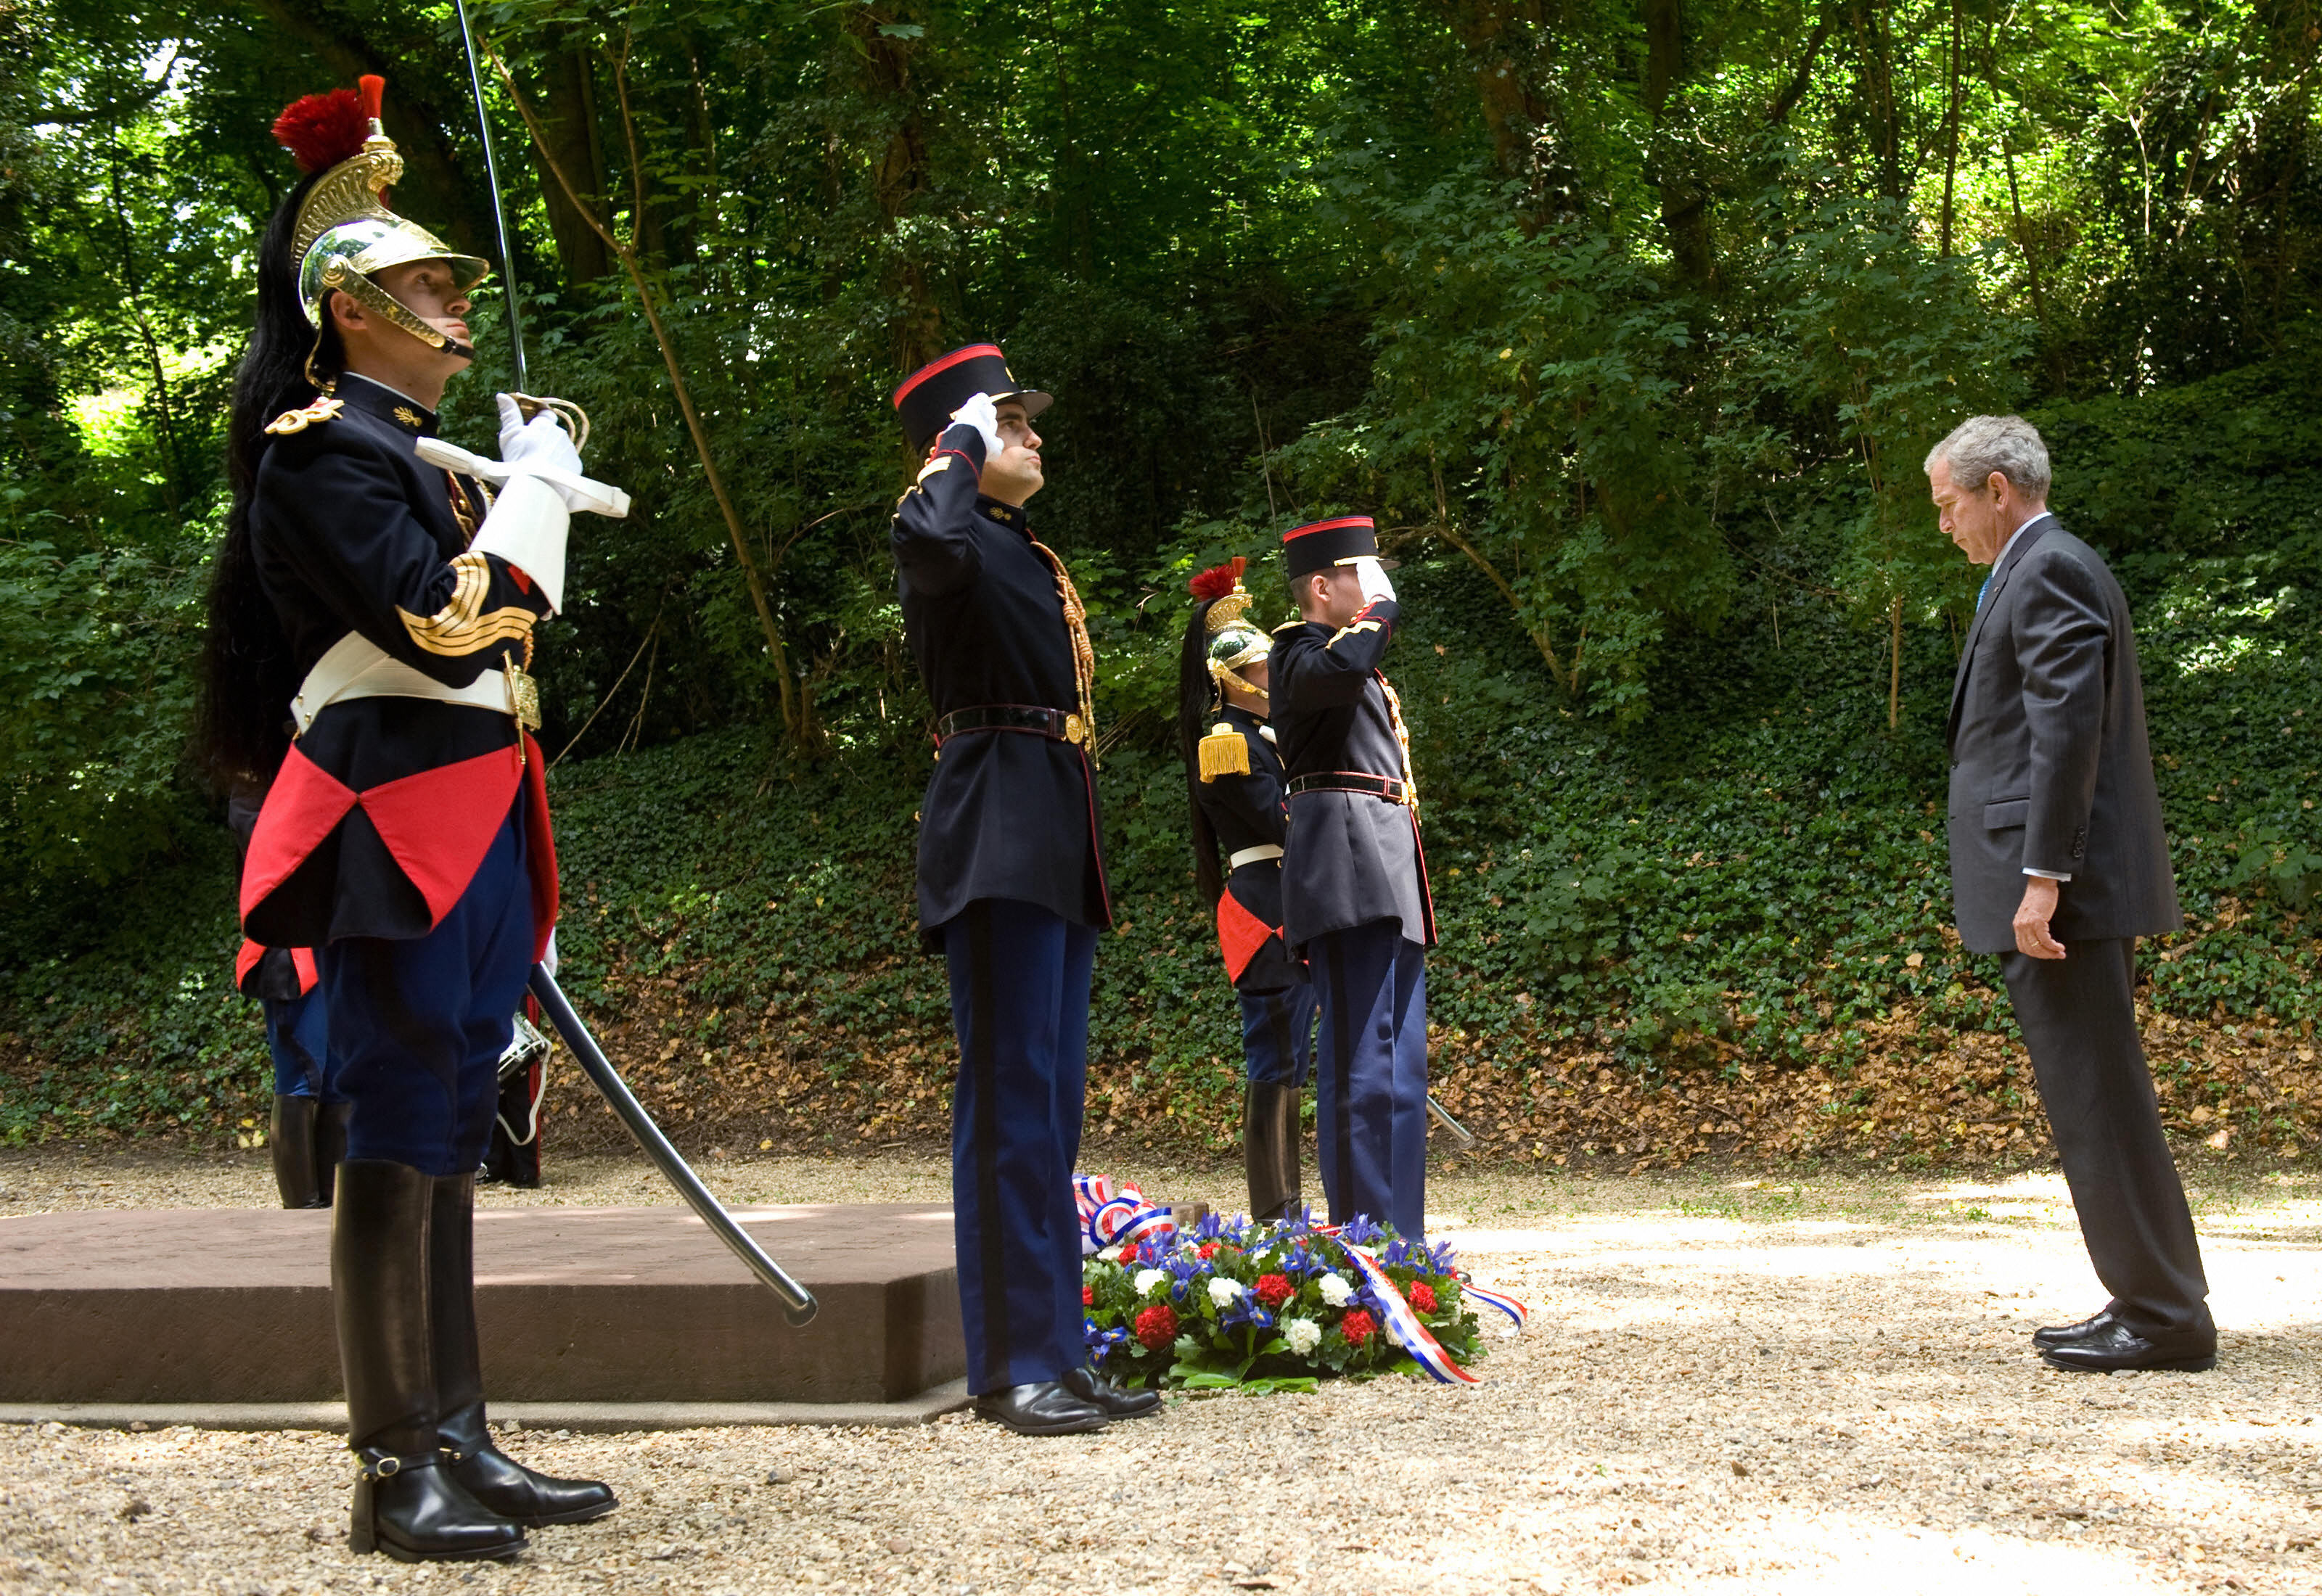 Bush pauses at a memorial to the French Resistance after laying a wreath. Vive la resistance!